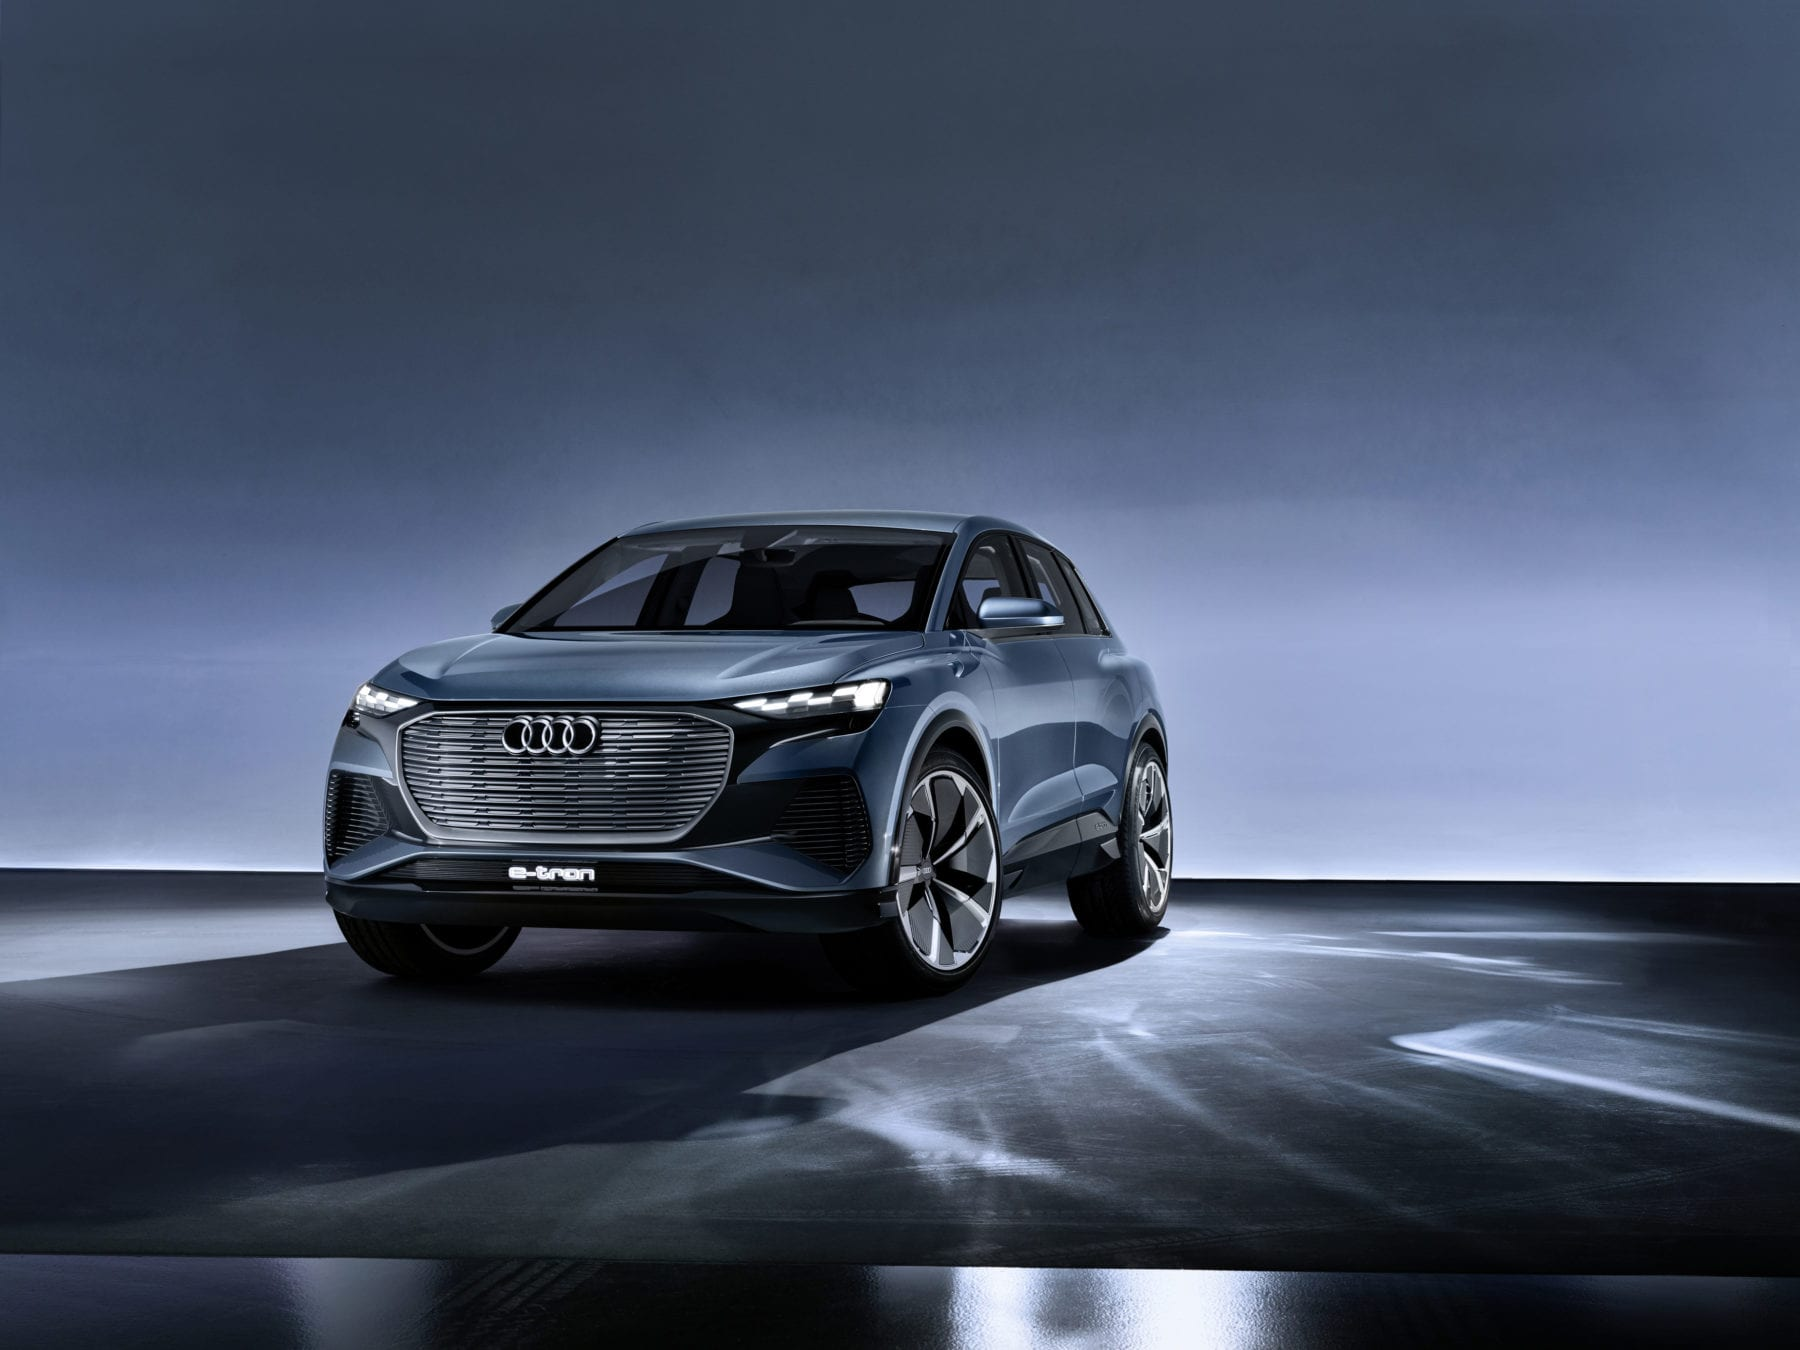 Audi S E Tron Is Growing Larger And As Time Goes On This Showed Off A Q4 Electric Suv Concept That Will Make Its Way To Production